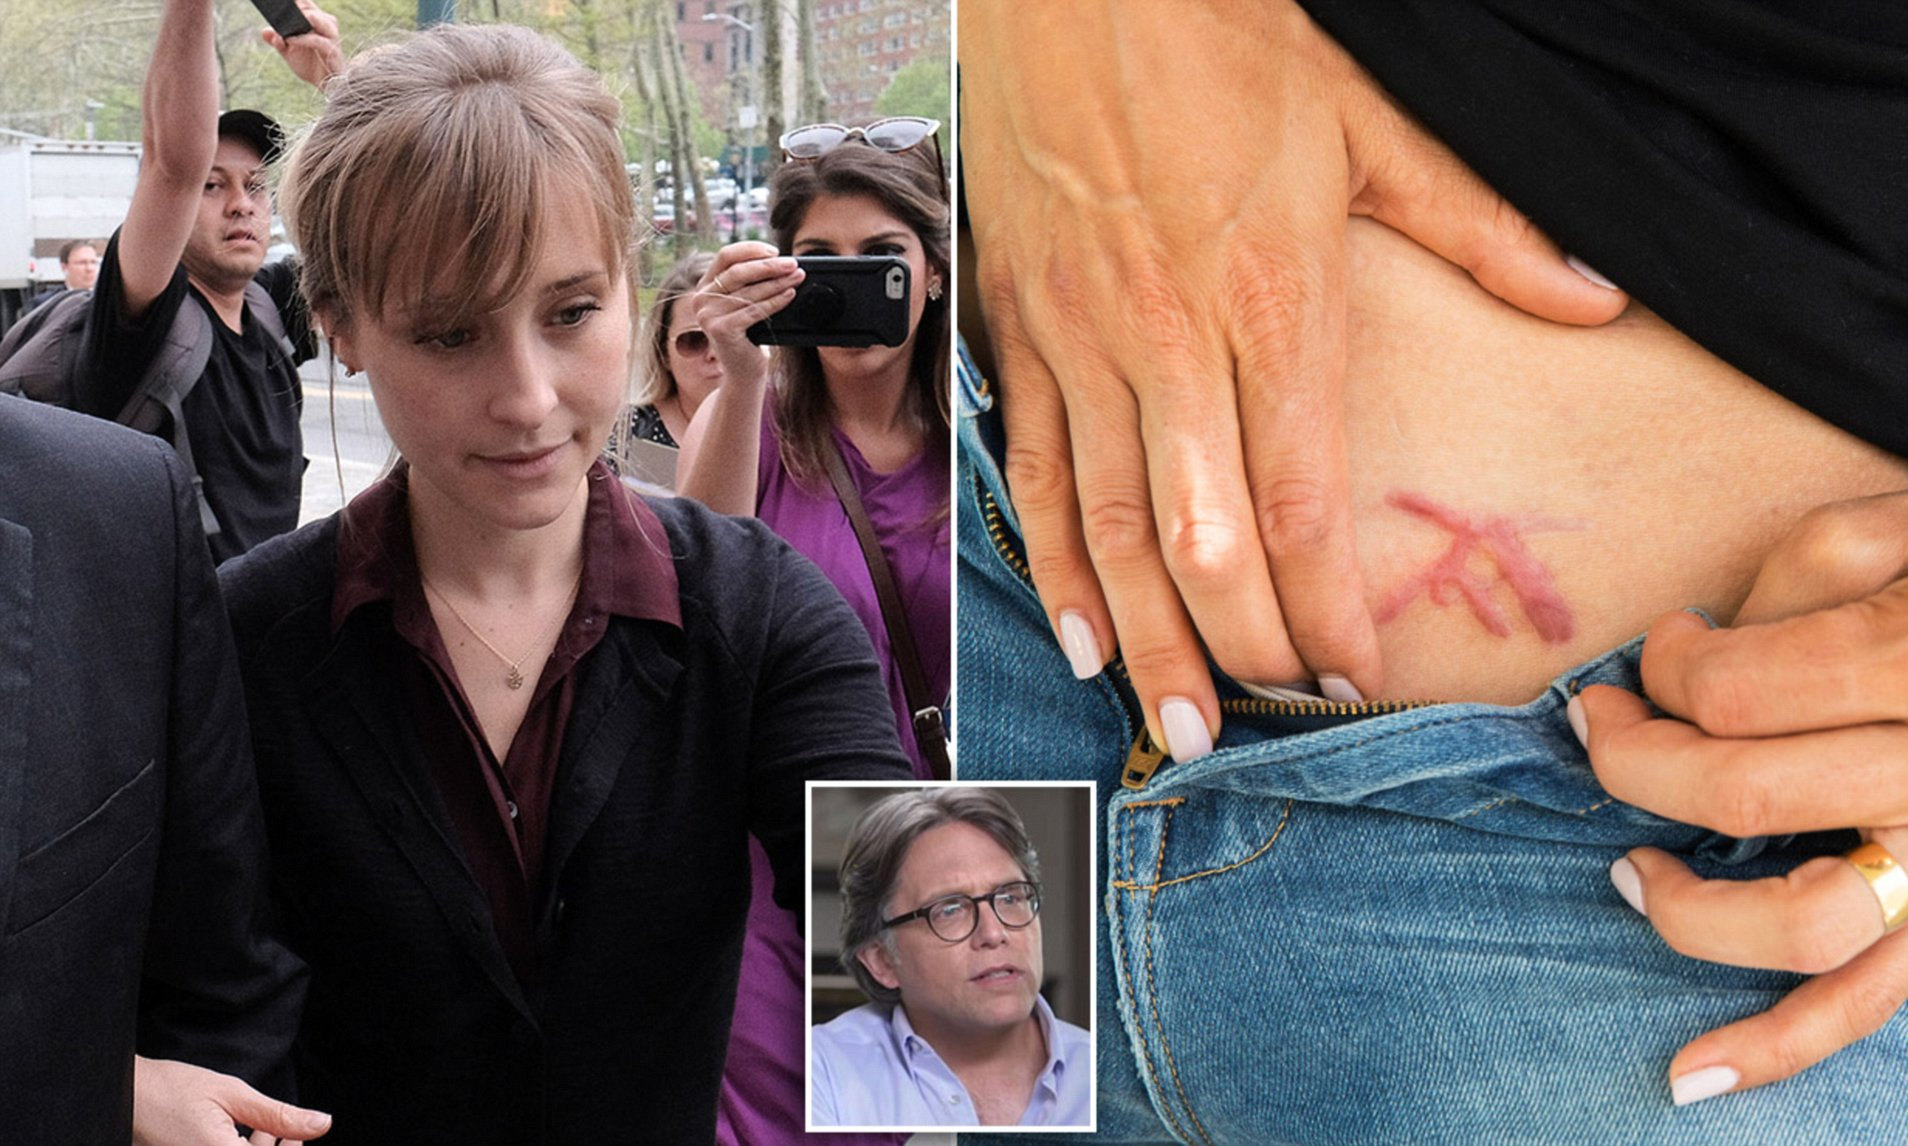 Allison Christin Mack allison mack: shady actress and sex cult leader - daily hawker